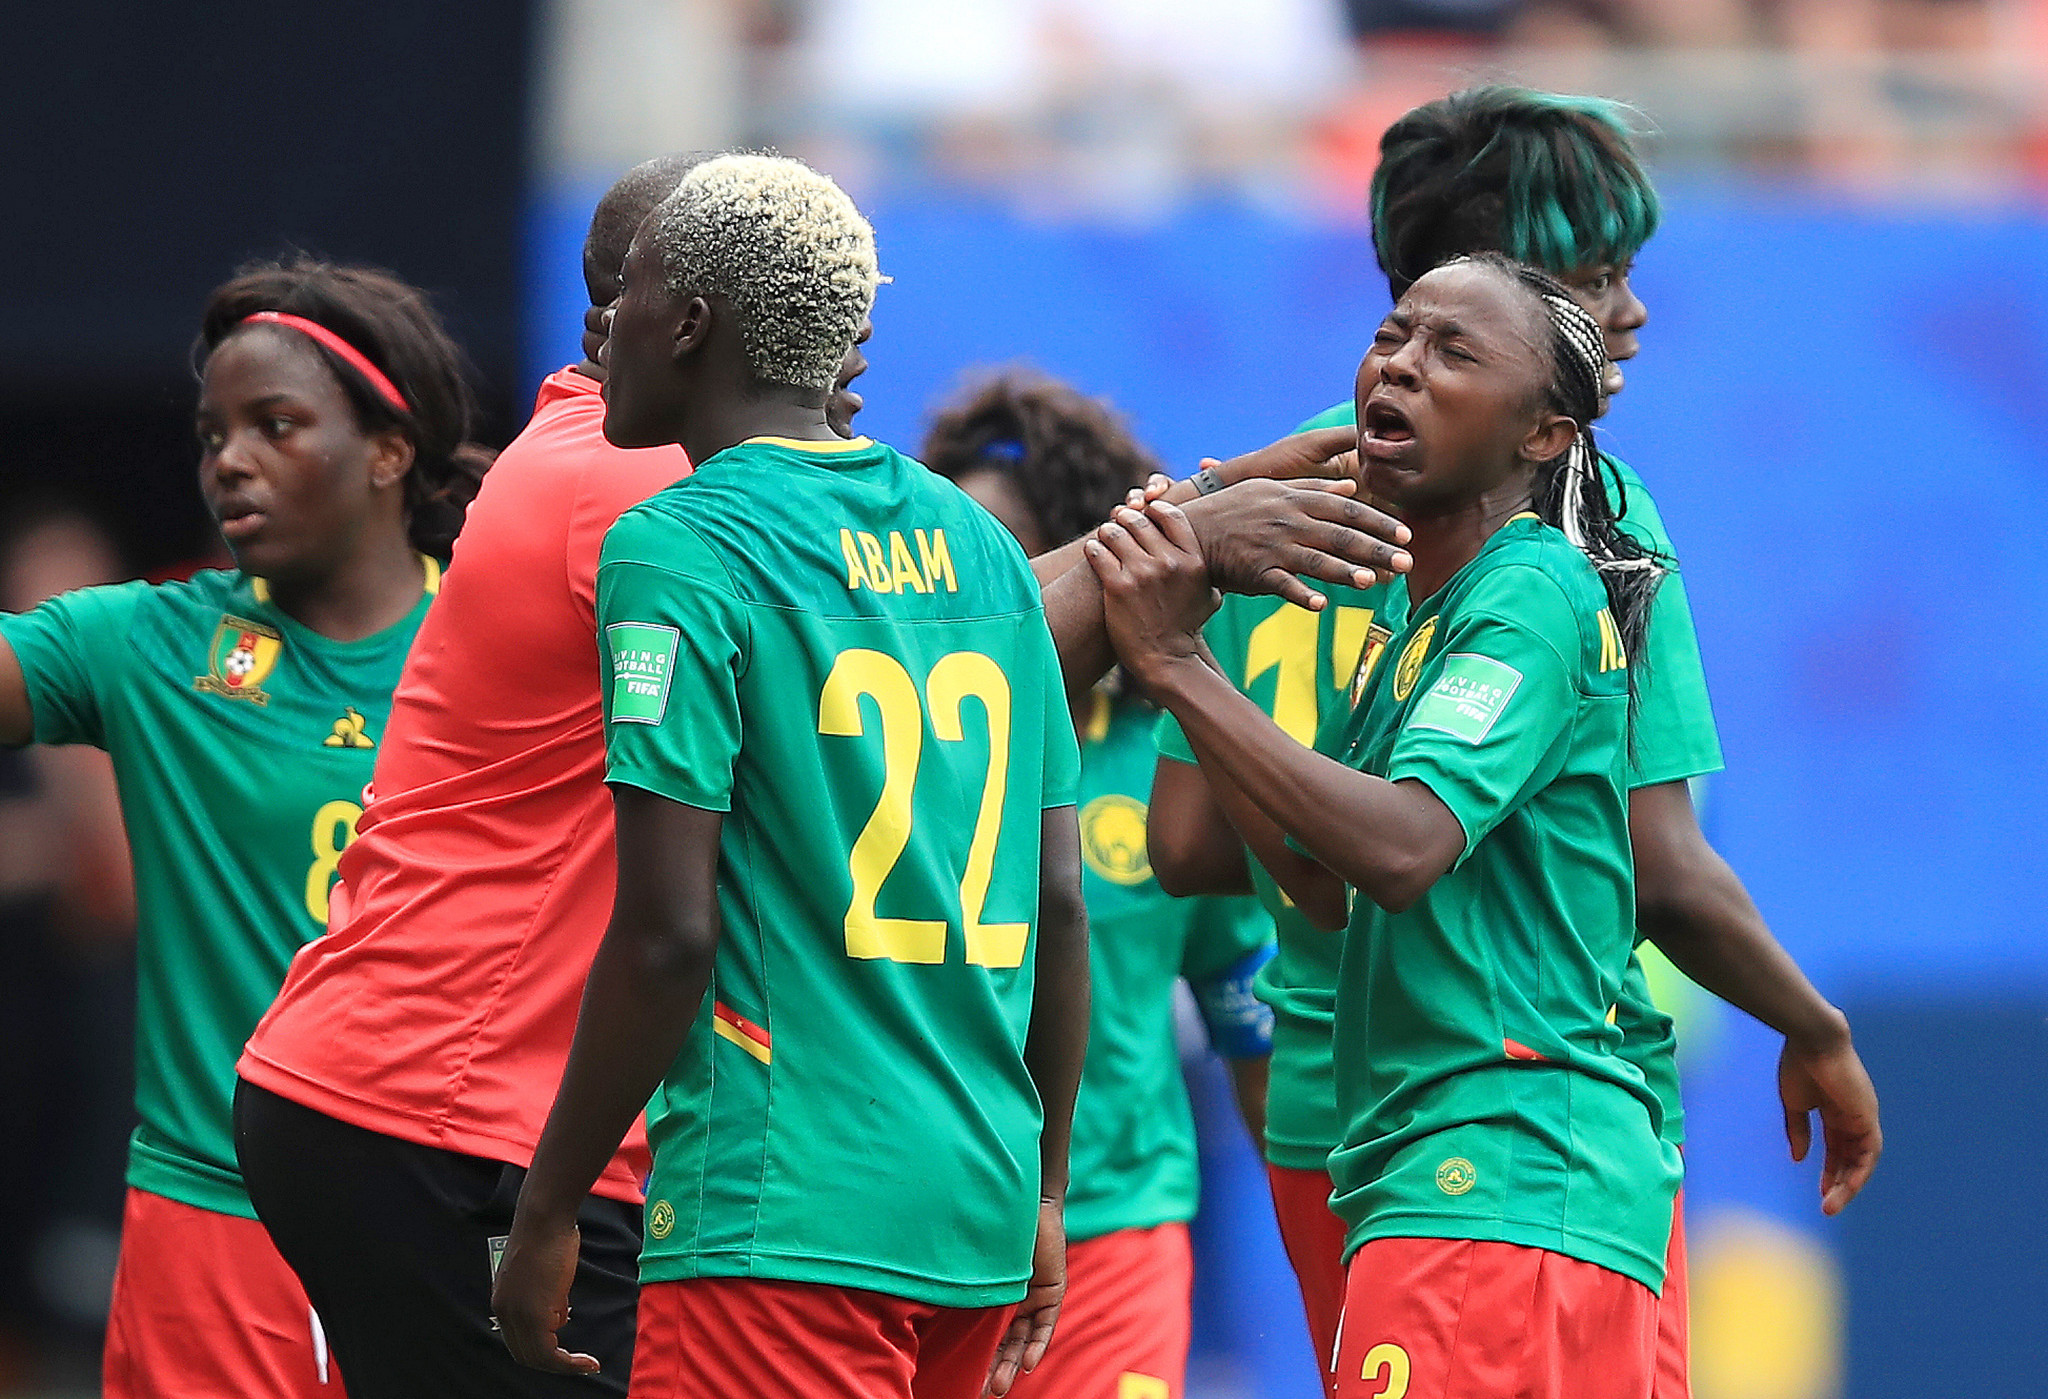 Ajara Nchout was in tears after another VAR decision went against Cameroon, ruling out her goal just after half time ©Getty Images